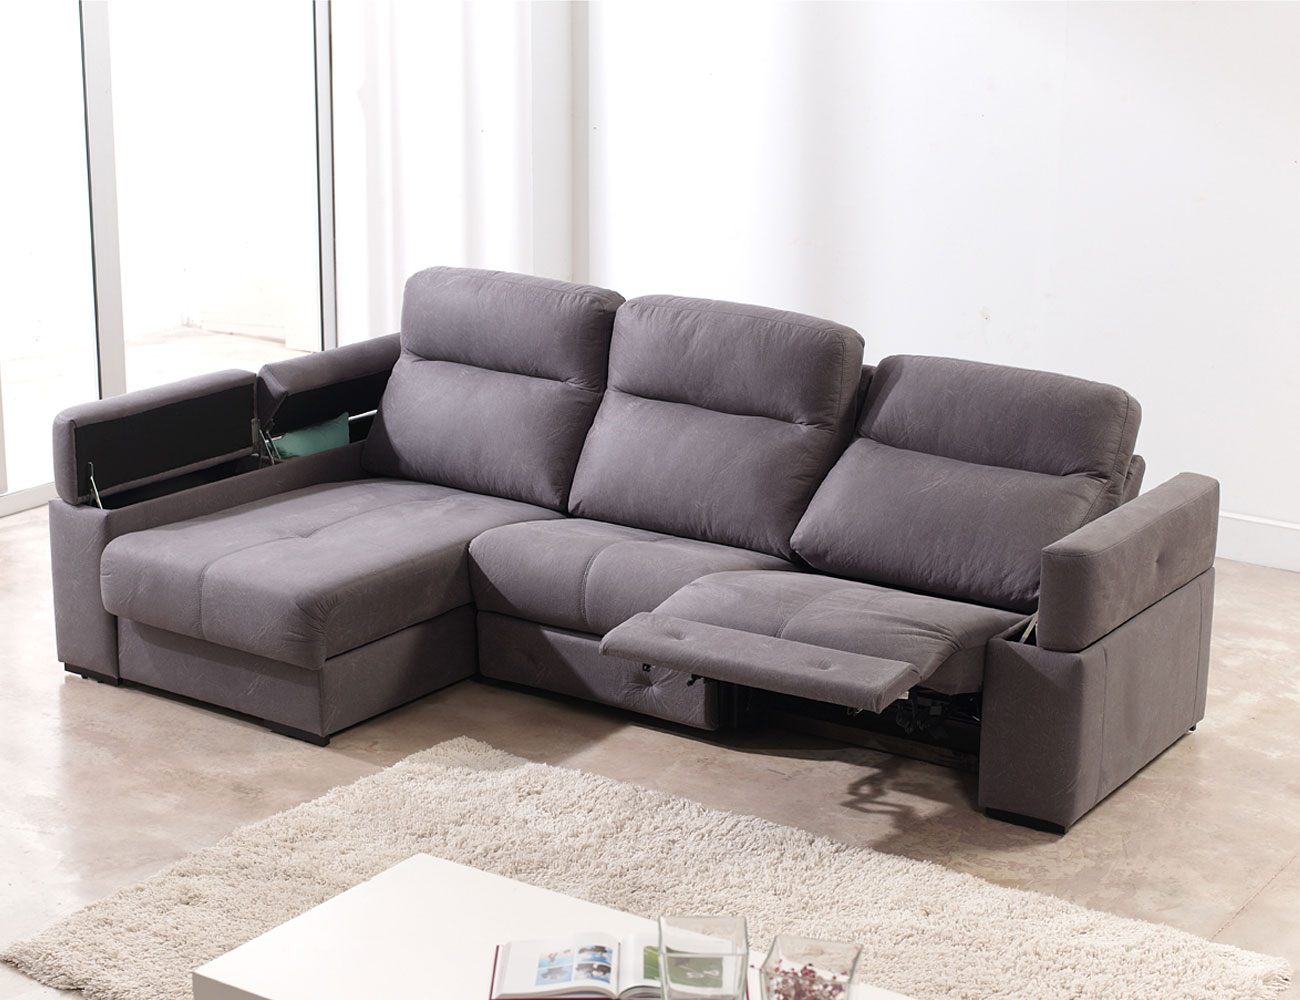 Sofa chaiselongue relax motor electrico 3 arcon 113